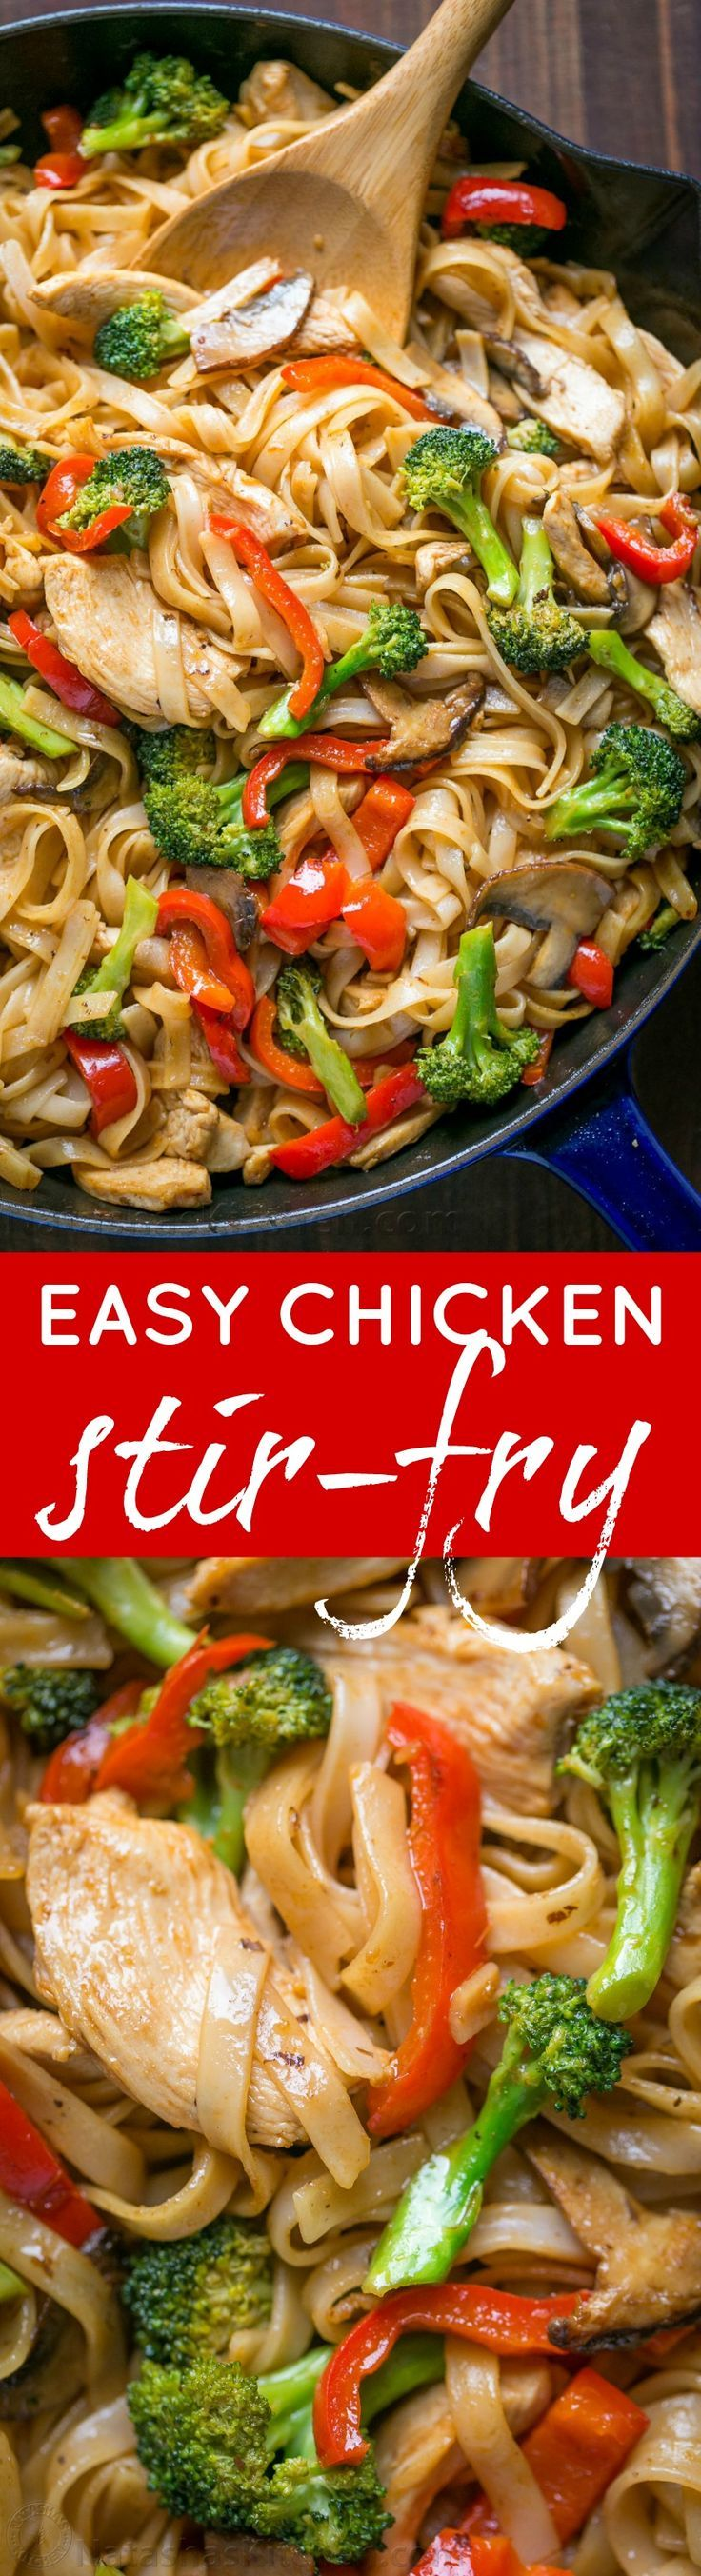 A quick and easy stir fry recipe thats done in 30 min! It's perfect for busy weeknights and healthier than takeout! Watch the easy stir fry video recipe. | http://natashaskitchen.com